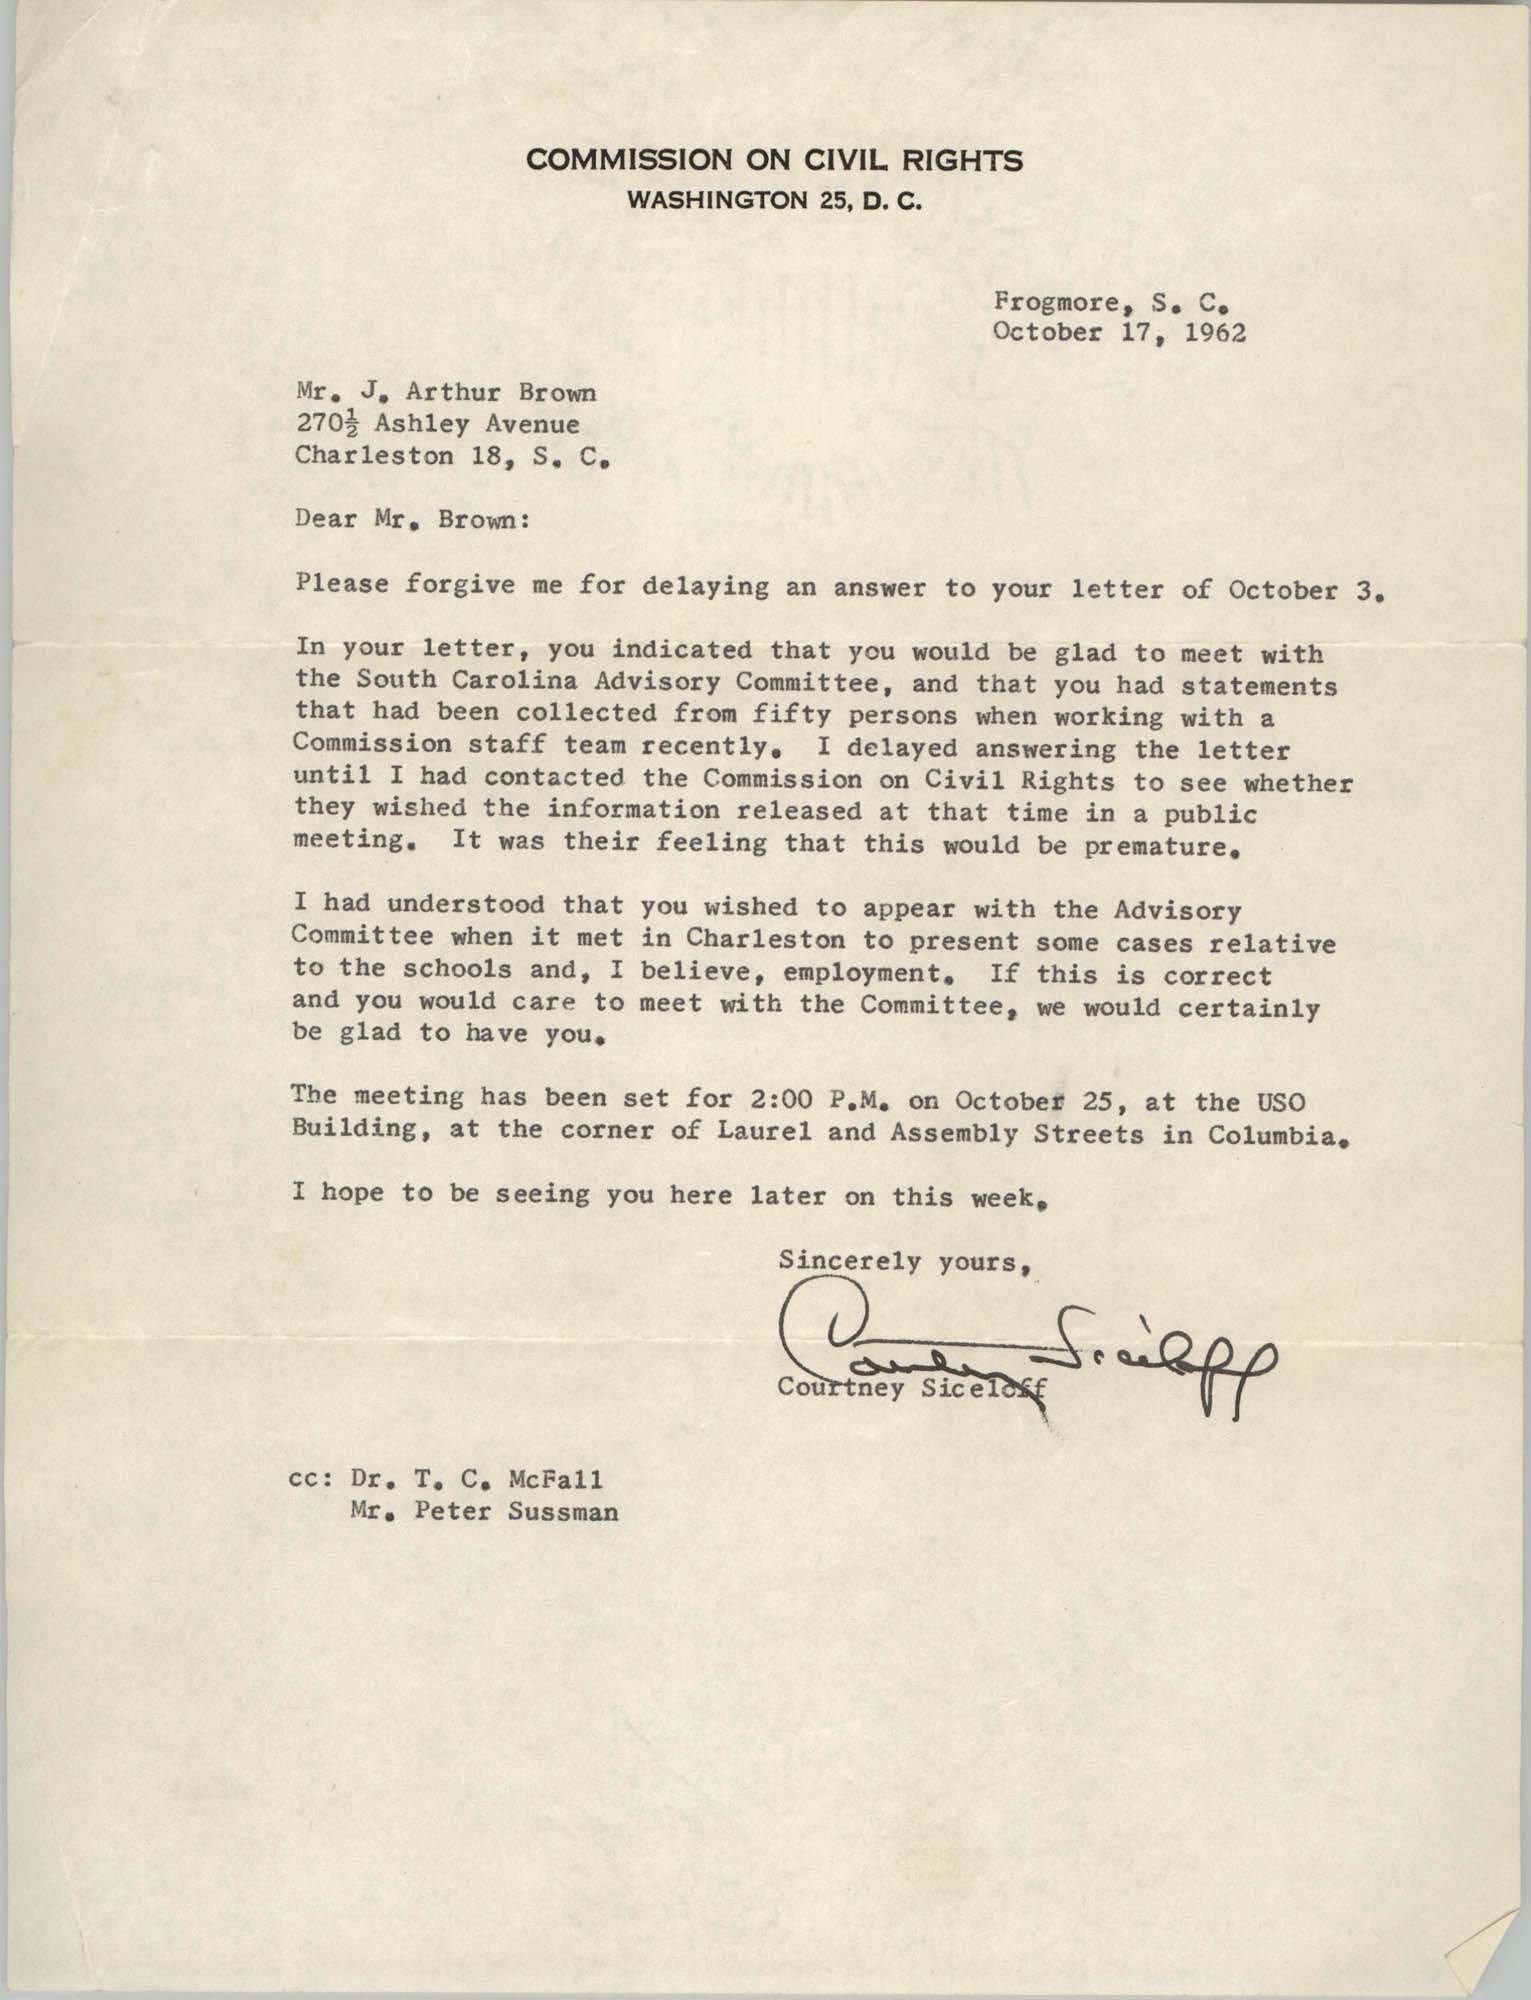 Letter from Courtney Siceloff to J. Arthur Brown, October 17, 1962